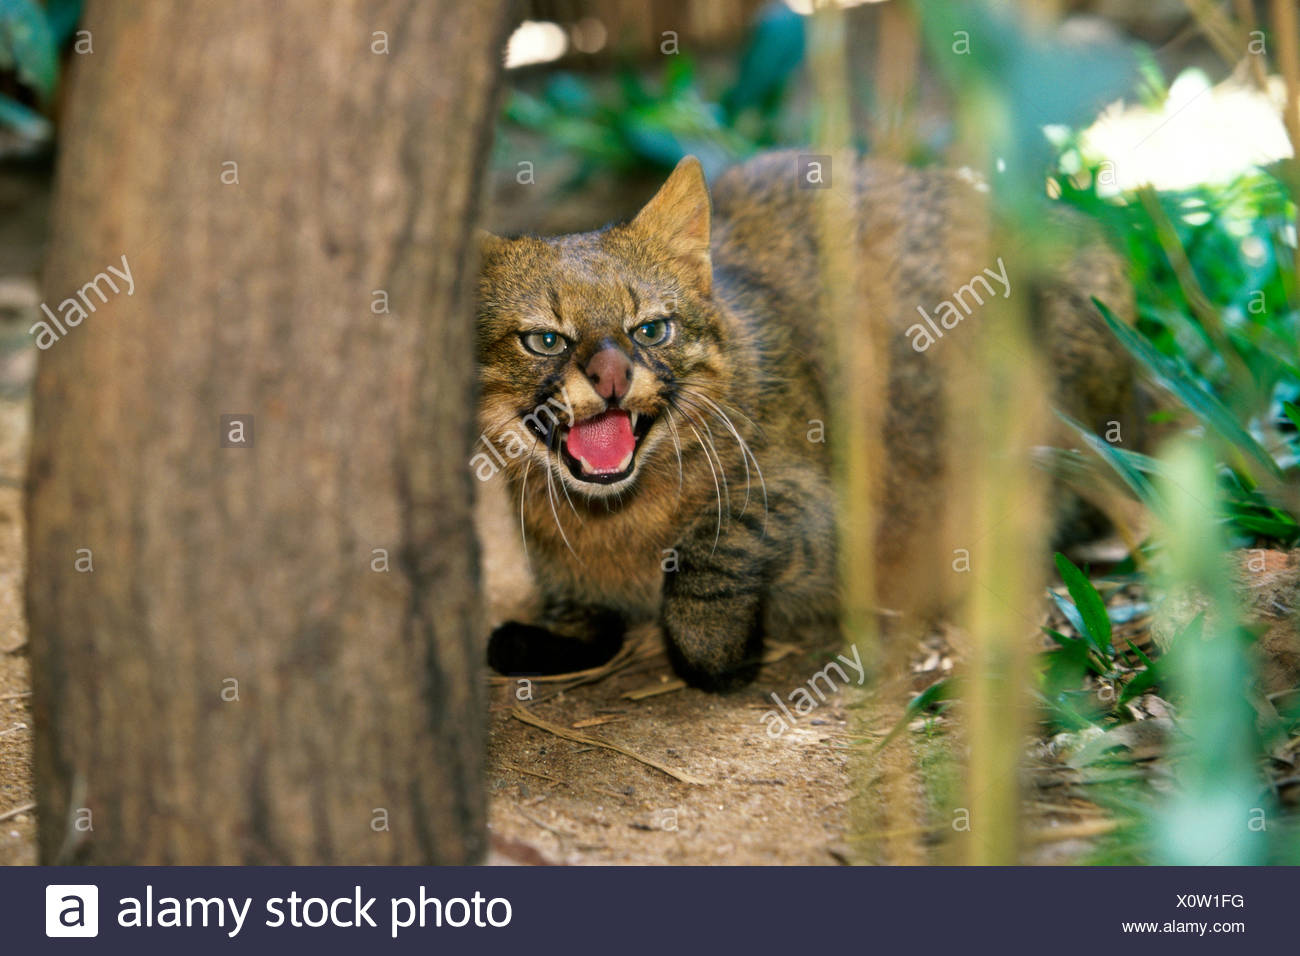 Pampas Cat snarling (Felis colocolo) Stock Photo